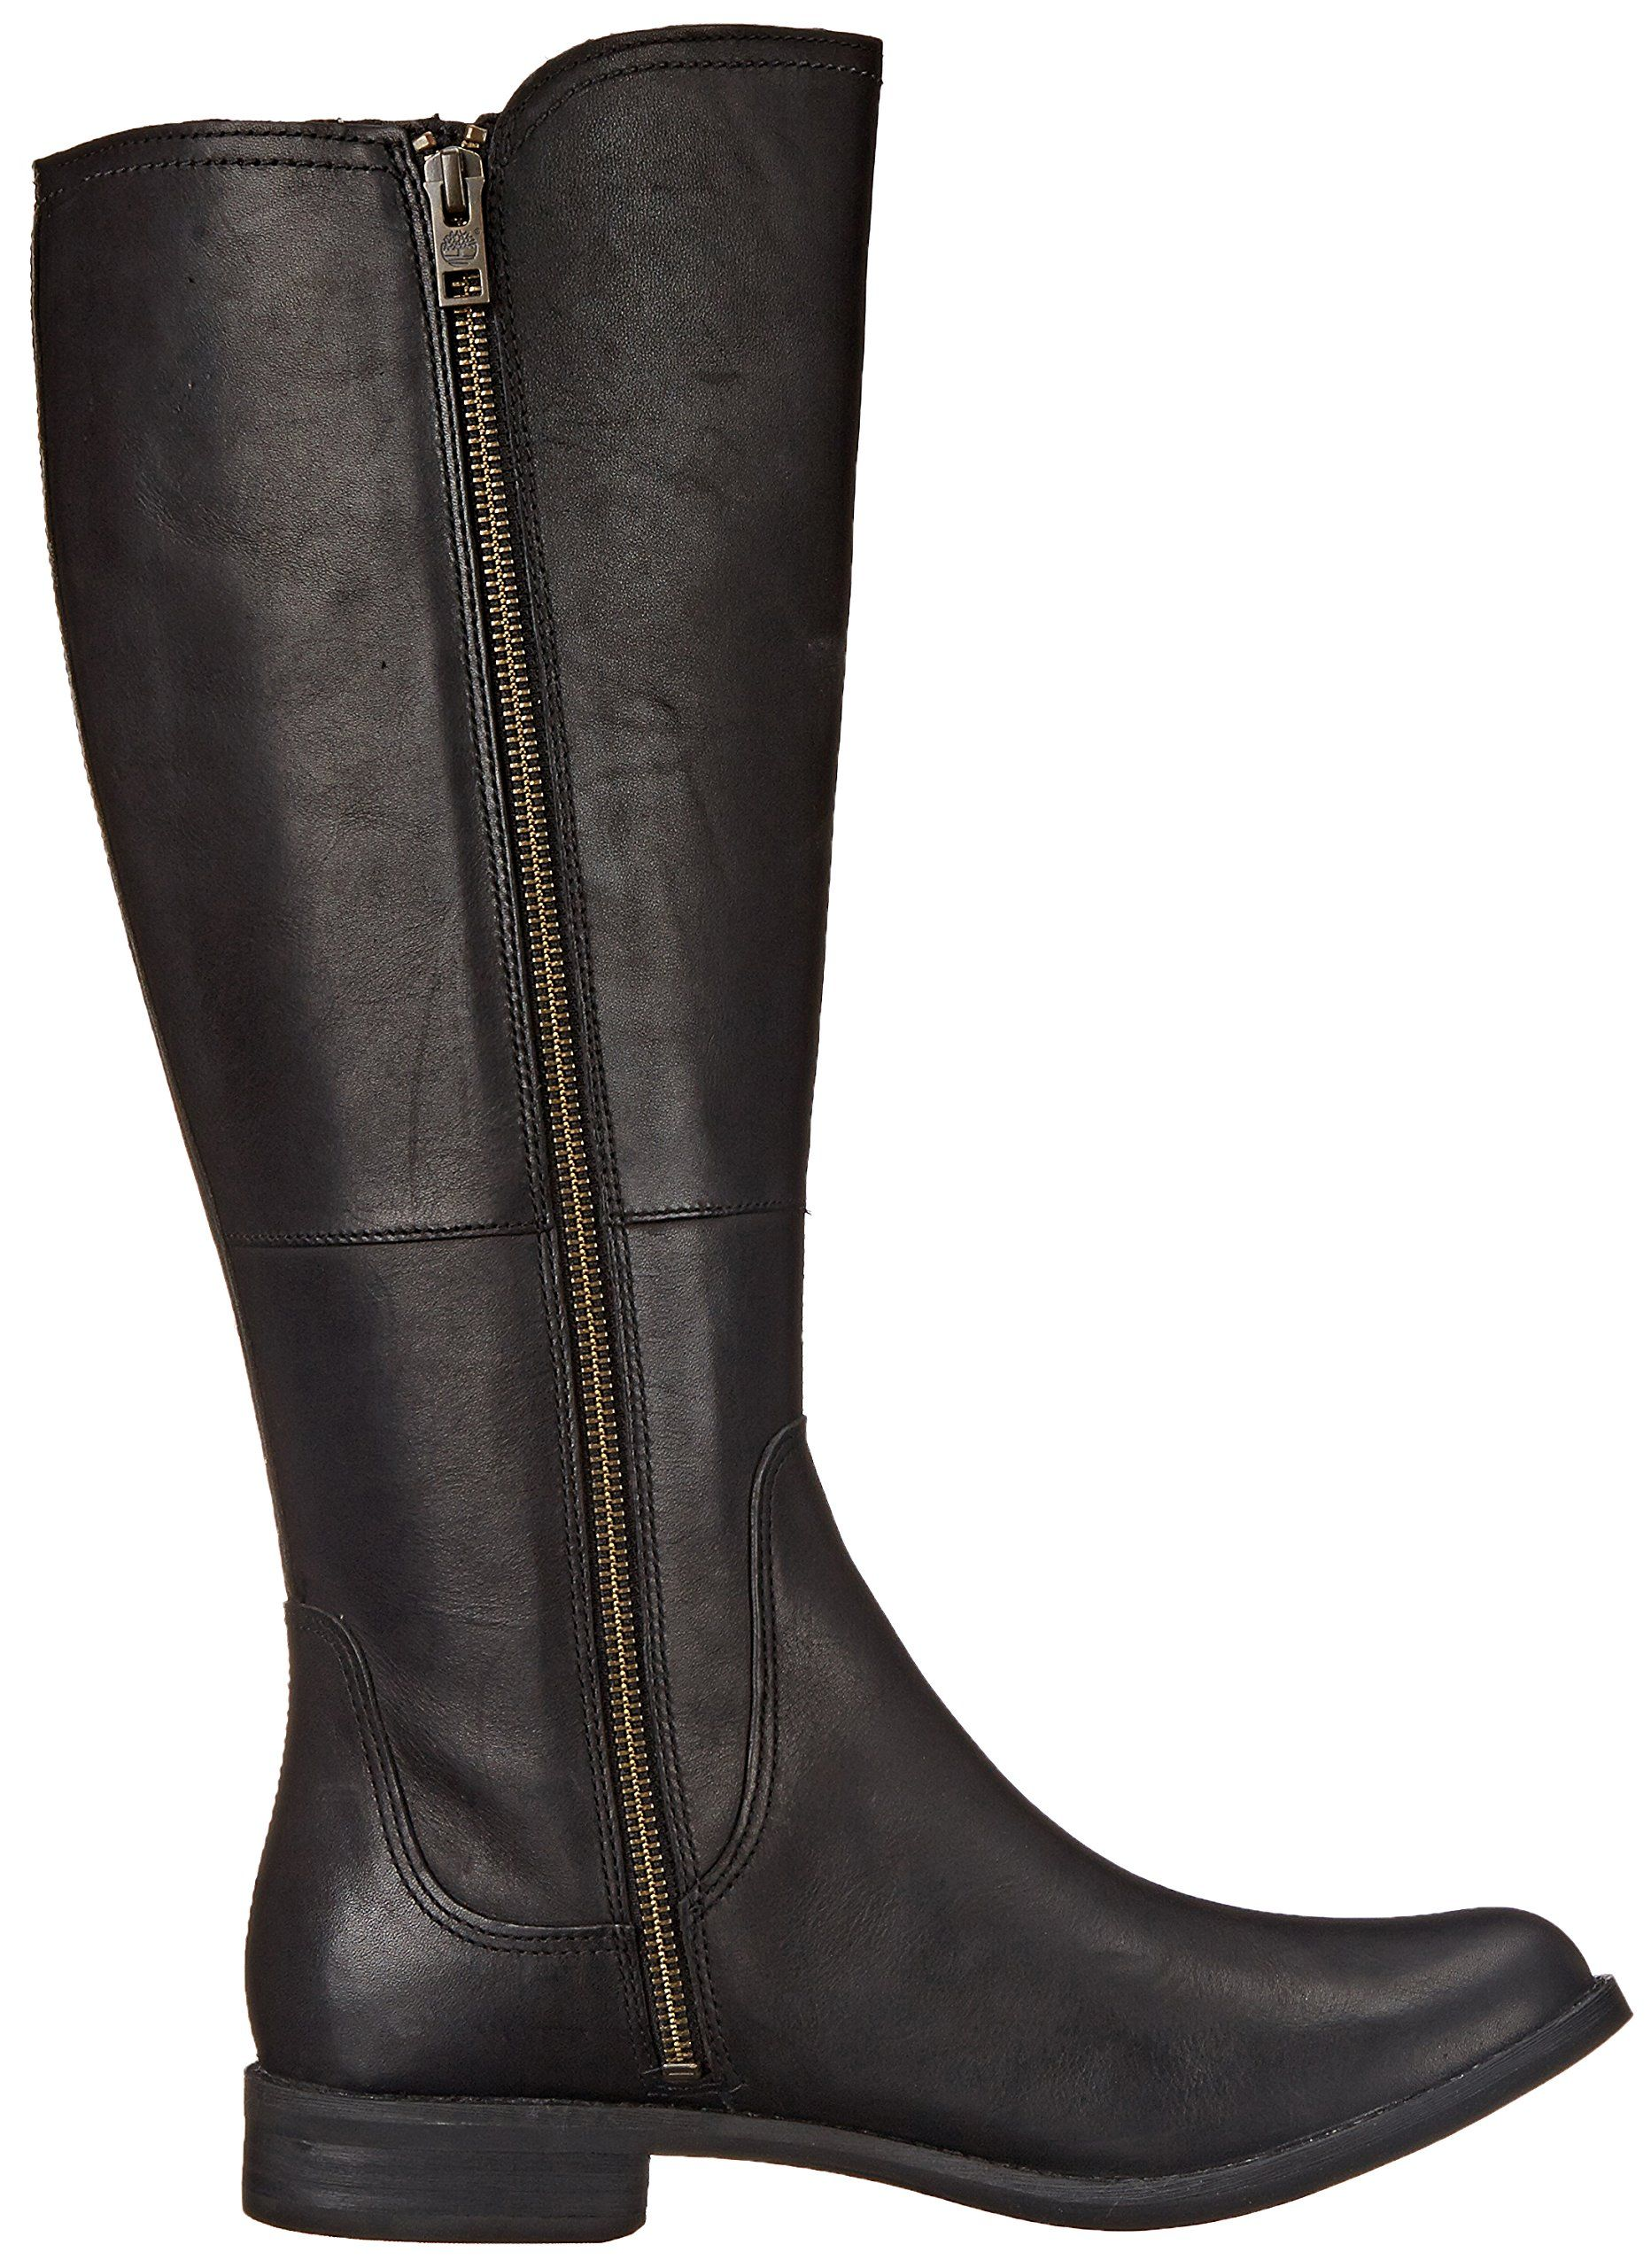 Timberland Womens Savin Hill All Fit Tall Boot Black Smooth 7.5 M US